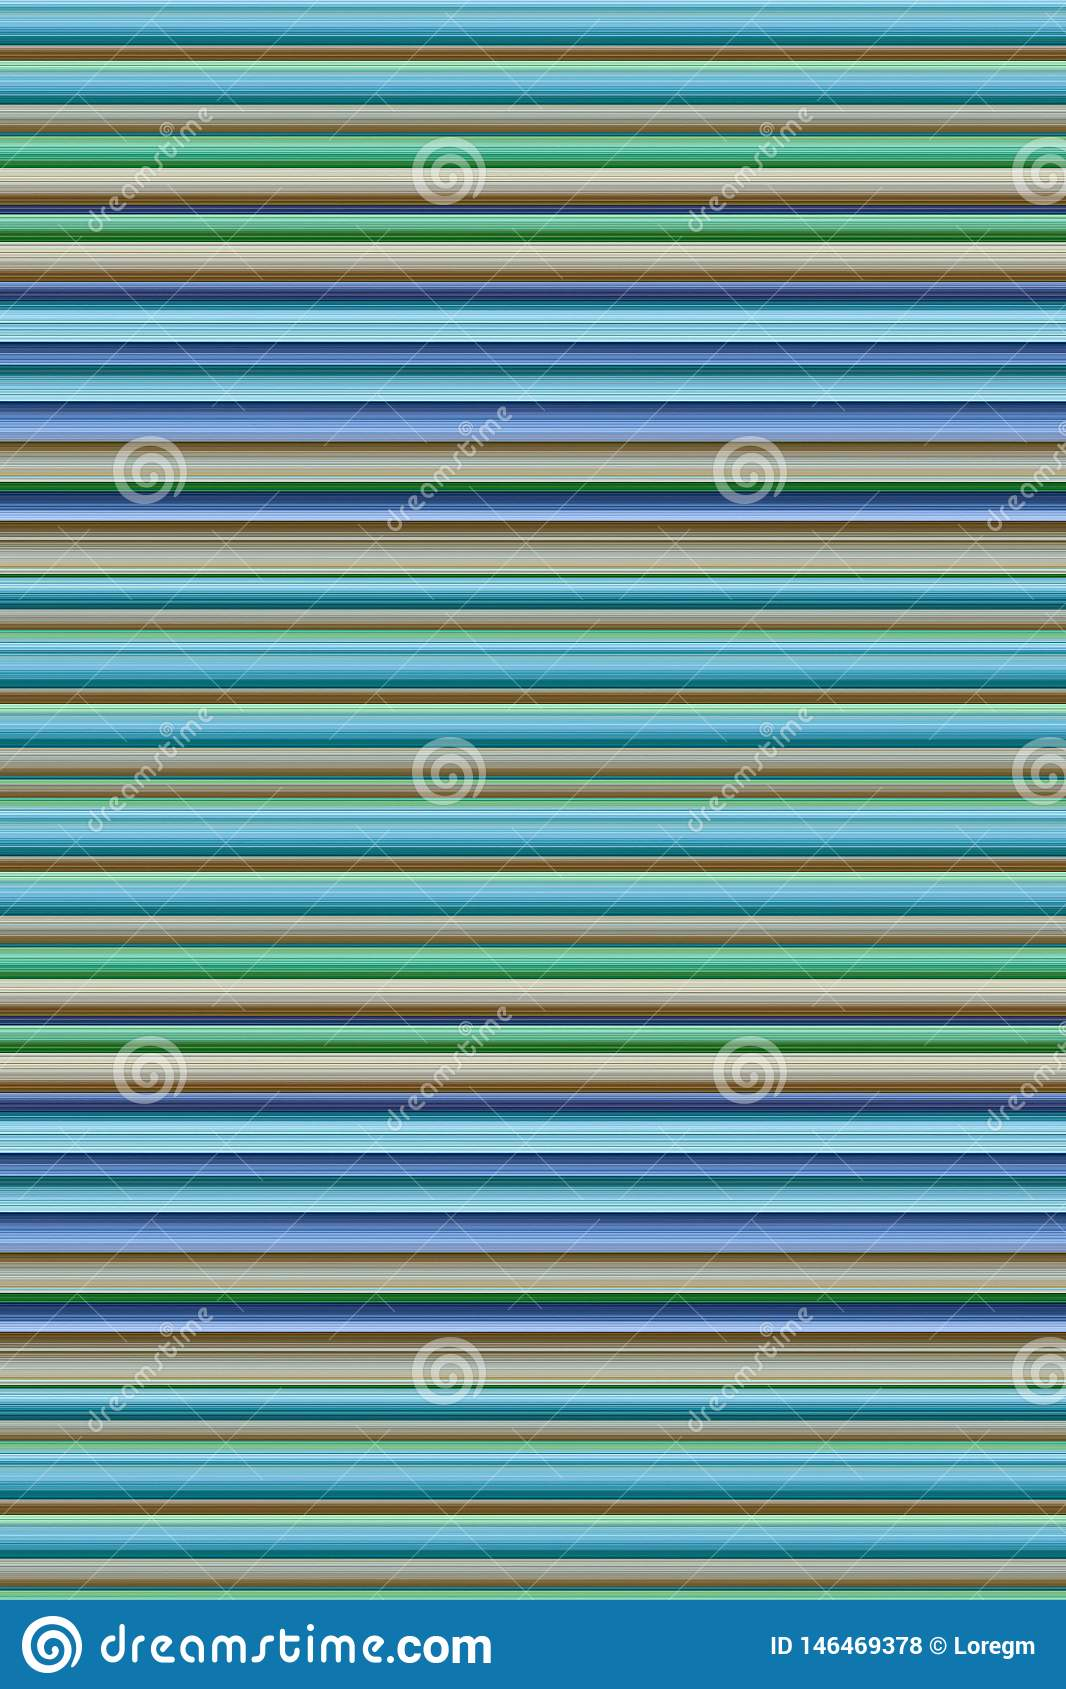 Dark background abstract wooden ribbed panel vertical logs horizontal row blue green beige